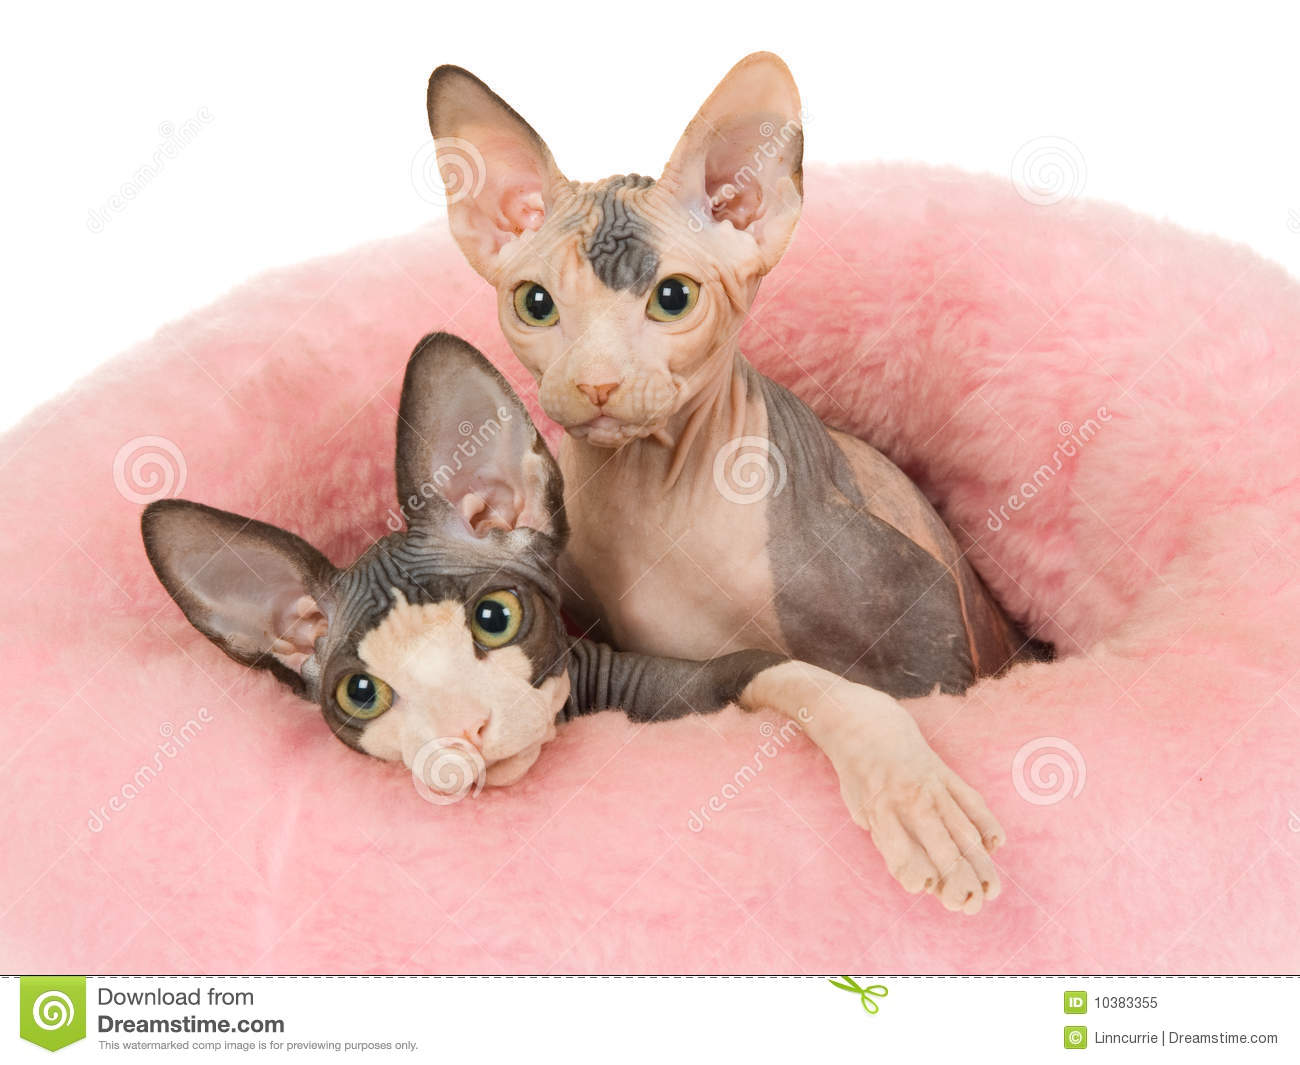 2 Cute Sphynx Kittens In Pink Fur Bed Royalty Free Stock ...